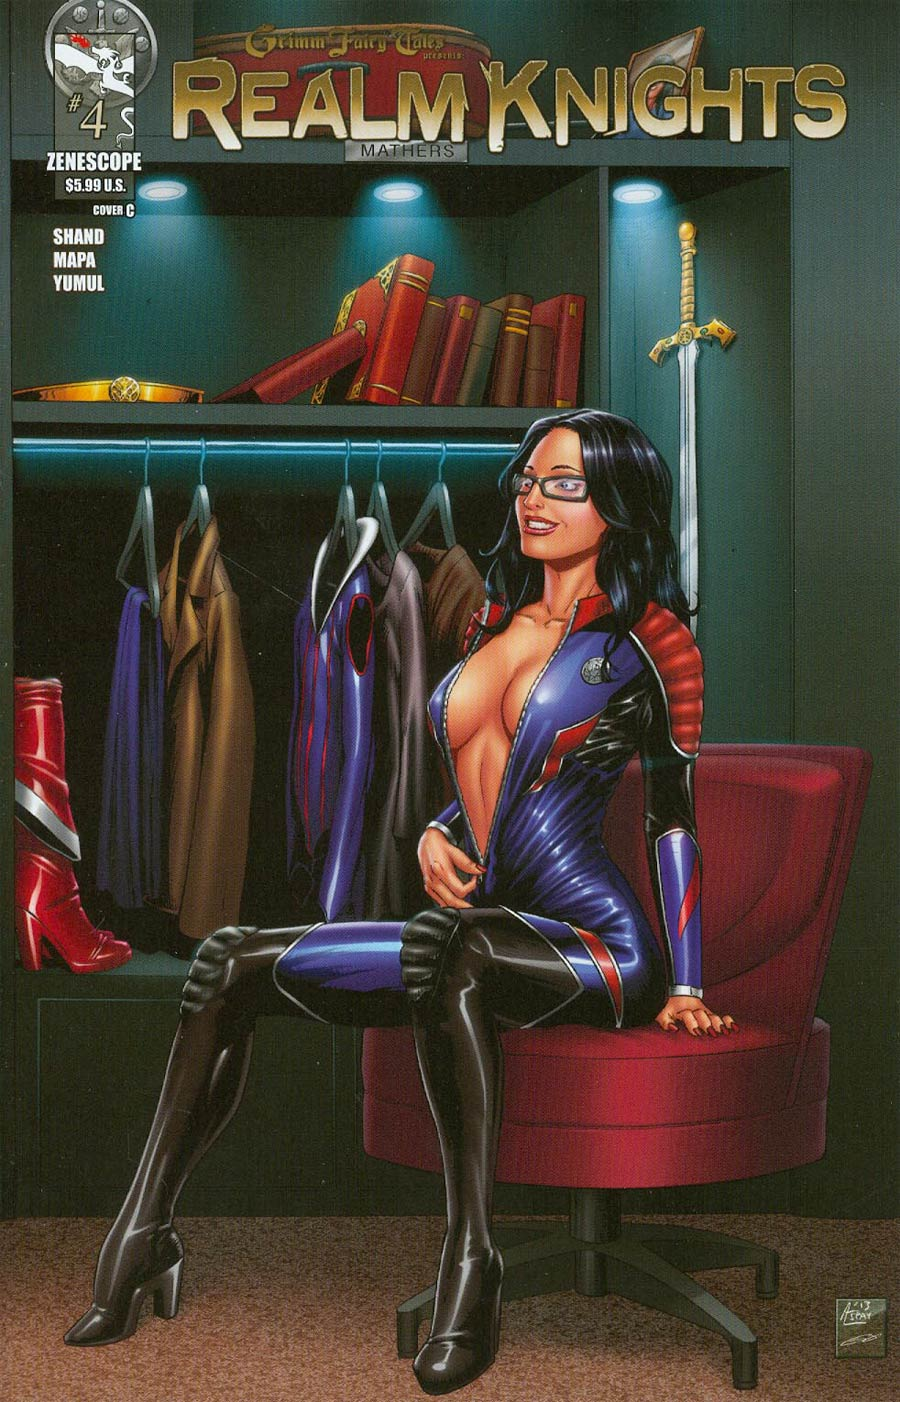 Grimm Fairy Tales Presents Realm Knights #4 Cover C Anthony Spay